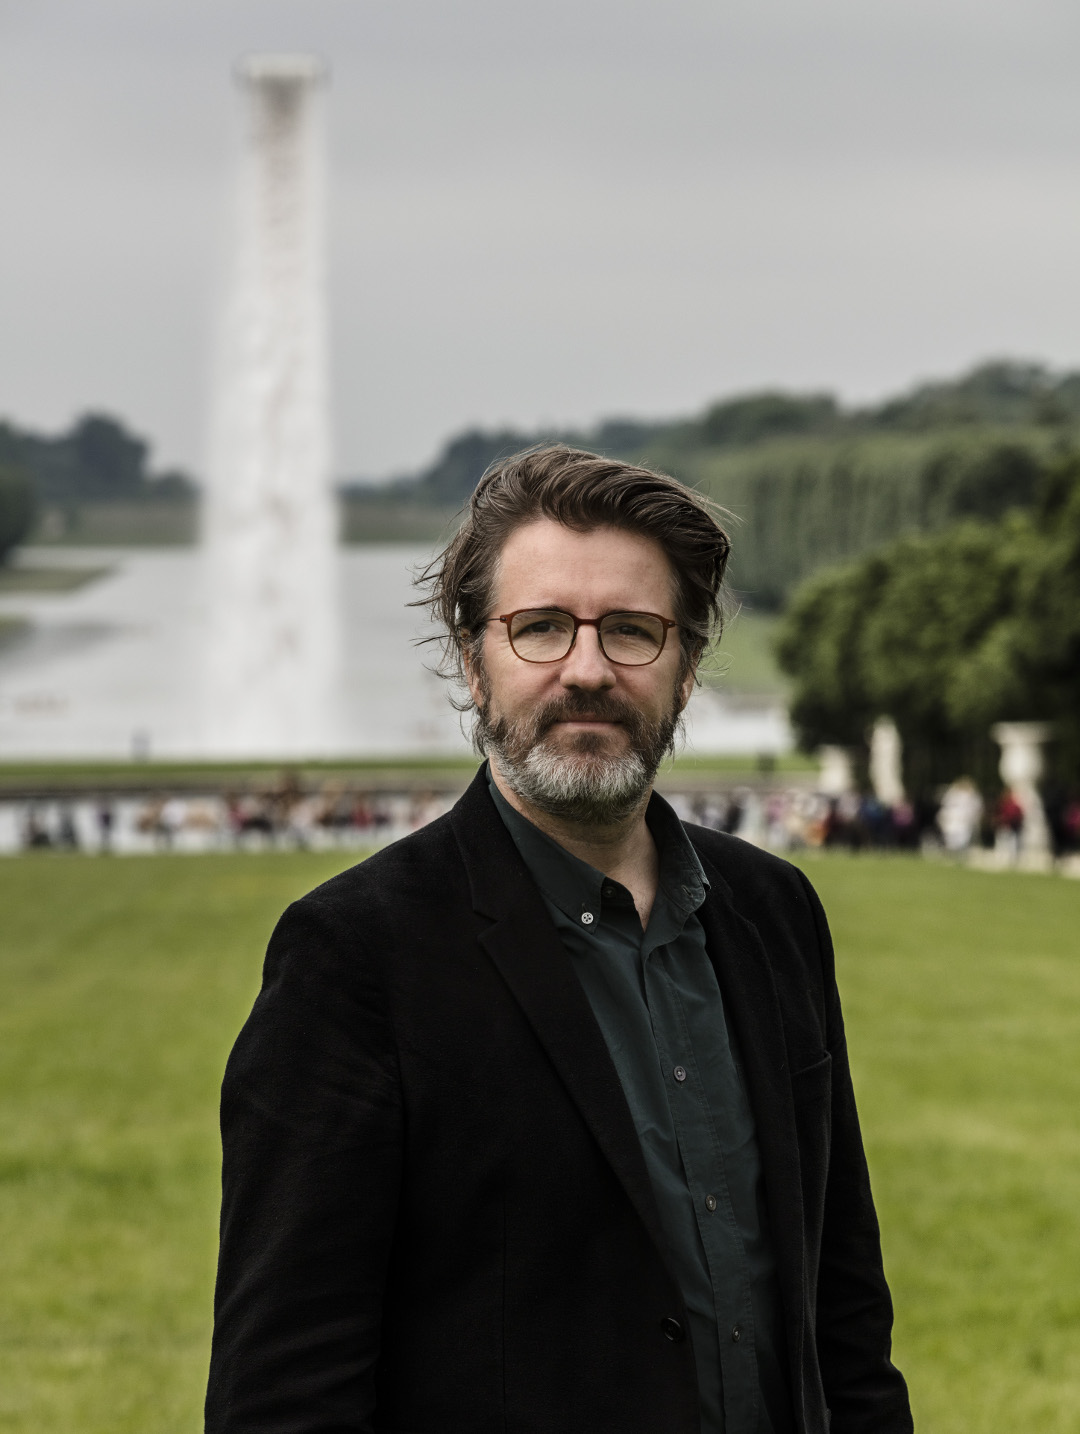 Olafur Eliasson, photograph by Anders Sune Berg